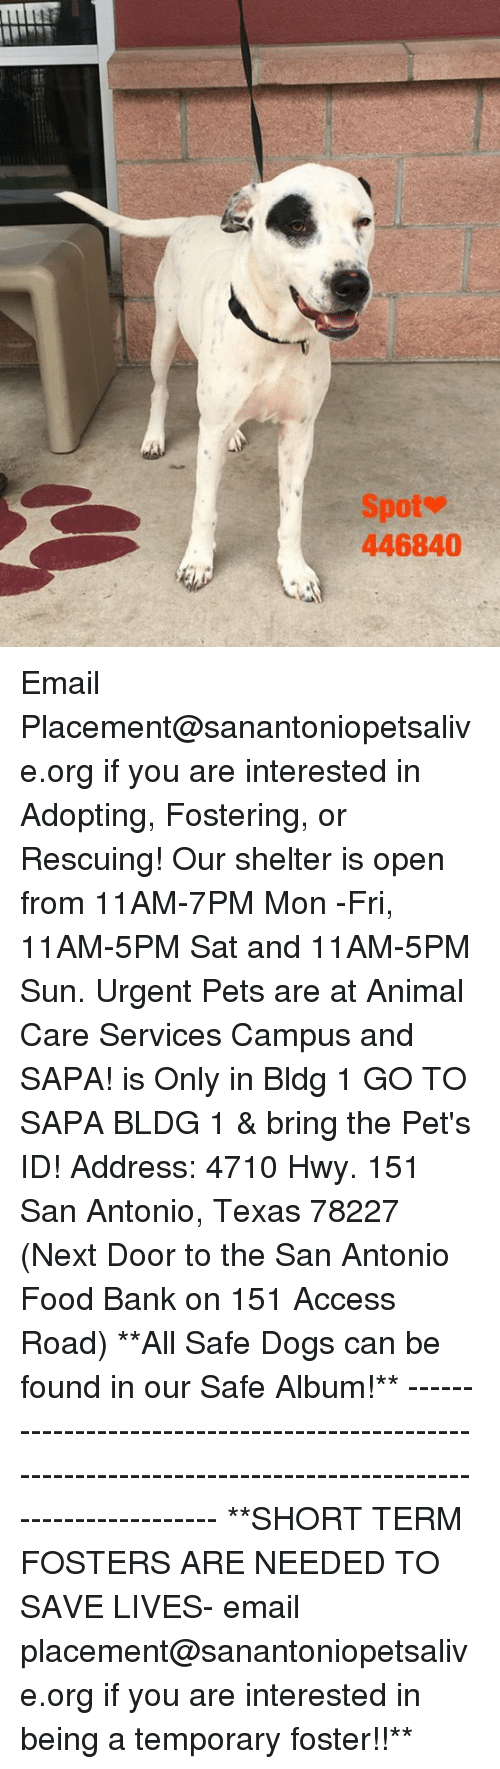 Dogs, Food, and Memes: Spot  446840 Email Placement@sanantoniopetsalive.org if you are interested in Adopting, Fostering, or Rescuing!  Our shelter is open from 11AM-7PM Mon -Fri, 11AM-5PM Sat and 11AM-5PM Sun.  Urgent Pets are at Animal Care Services Campus and SAPA! is Only in Bldg 1 GO TO SAPA BLDG 1 & bring the Pet's ID! Address: 4710 Hwy. 151 San Antonio, Texas 78227 (Next Door to the San Antonio Food Bank on 151 Access Road)  **All Safe Dogs can be found in our Safe Album!** ---------------------------------------------------------------------------------------------------------- **SHORT TERM FOSTERS ARE NEEDED TO SAVE LIVES- email placement@sanantoniopetsalive.org if you are interested in being a temporary foster!!**